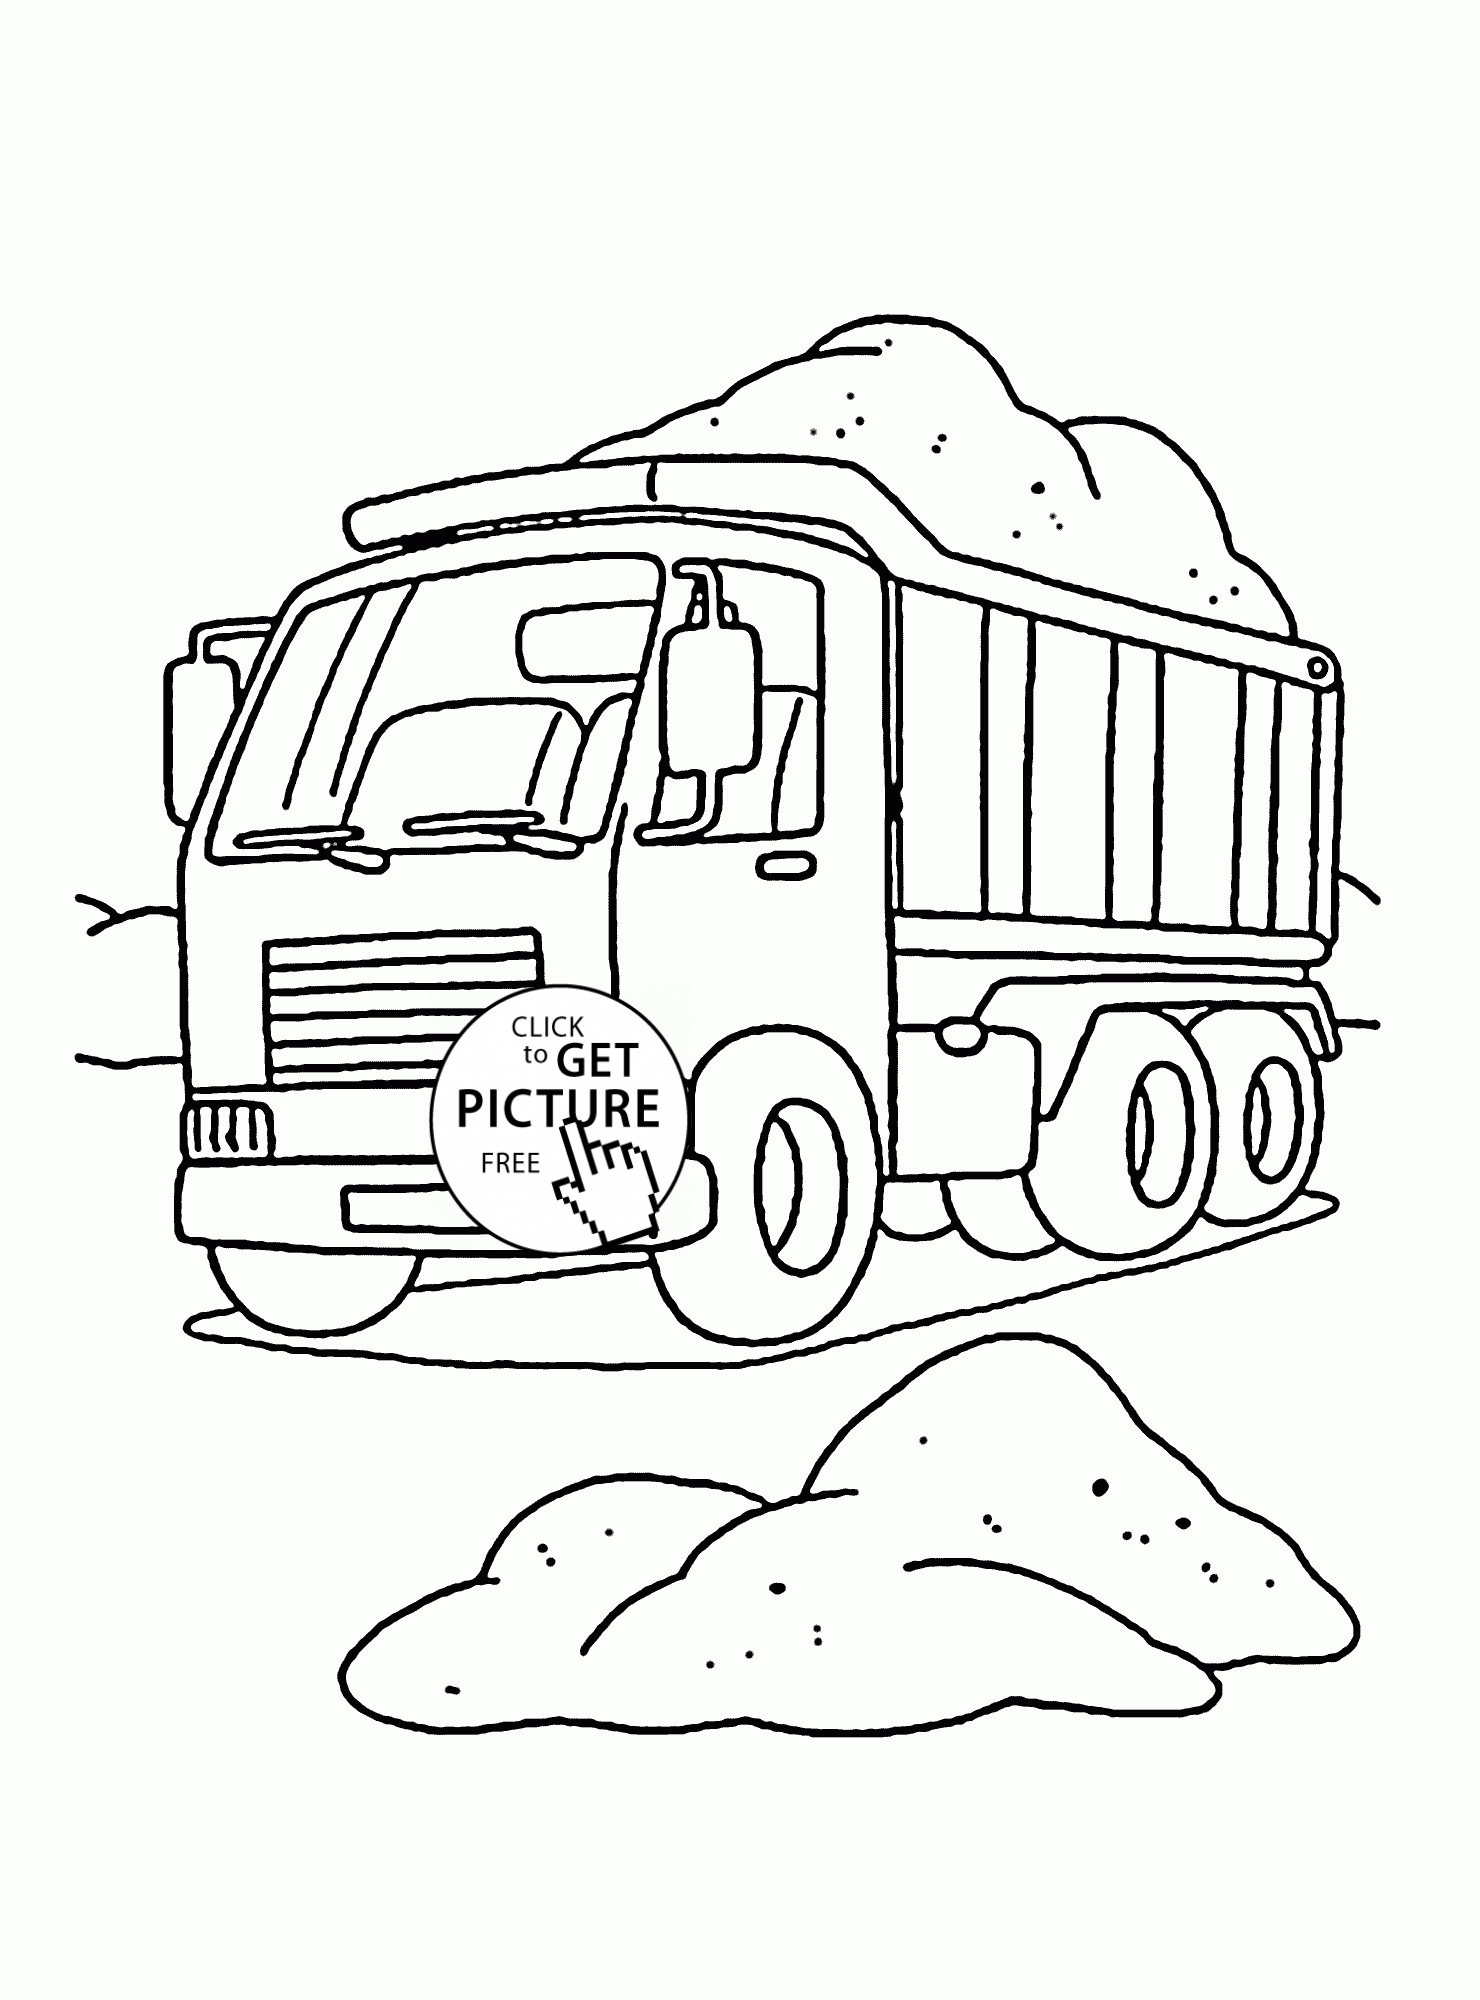 construction truck coloring pages - construction dump truck coloring page for kids transportation coloring pages printables free 2